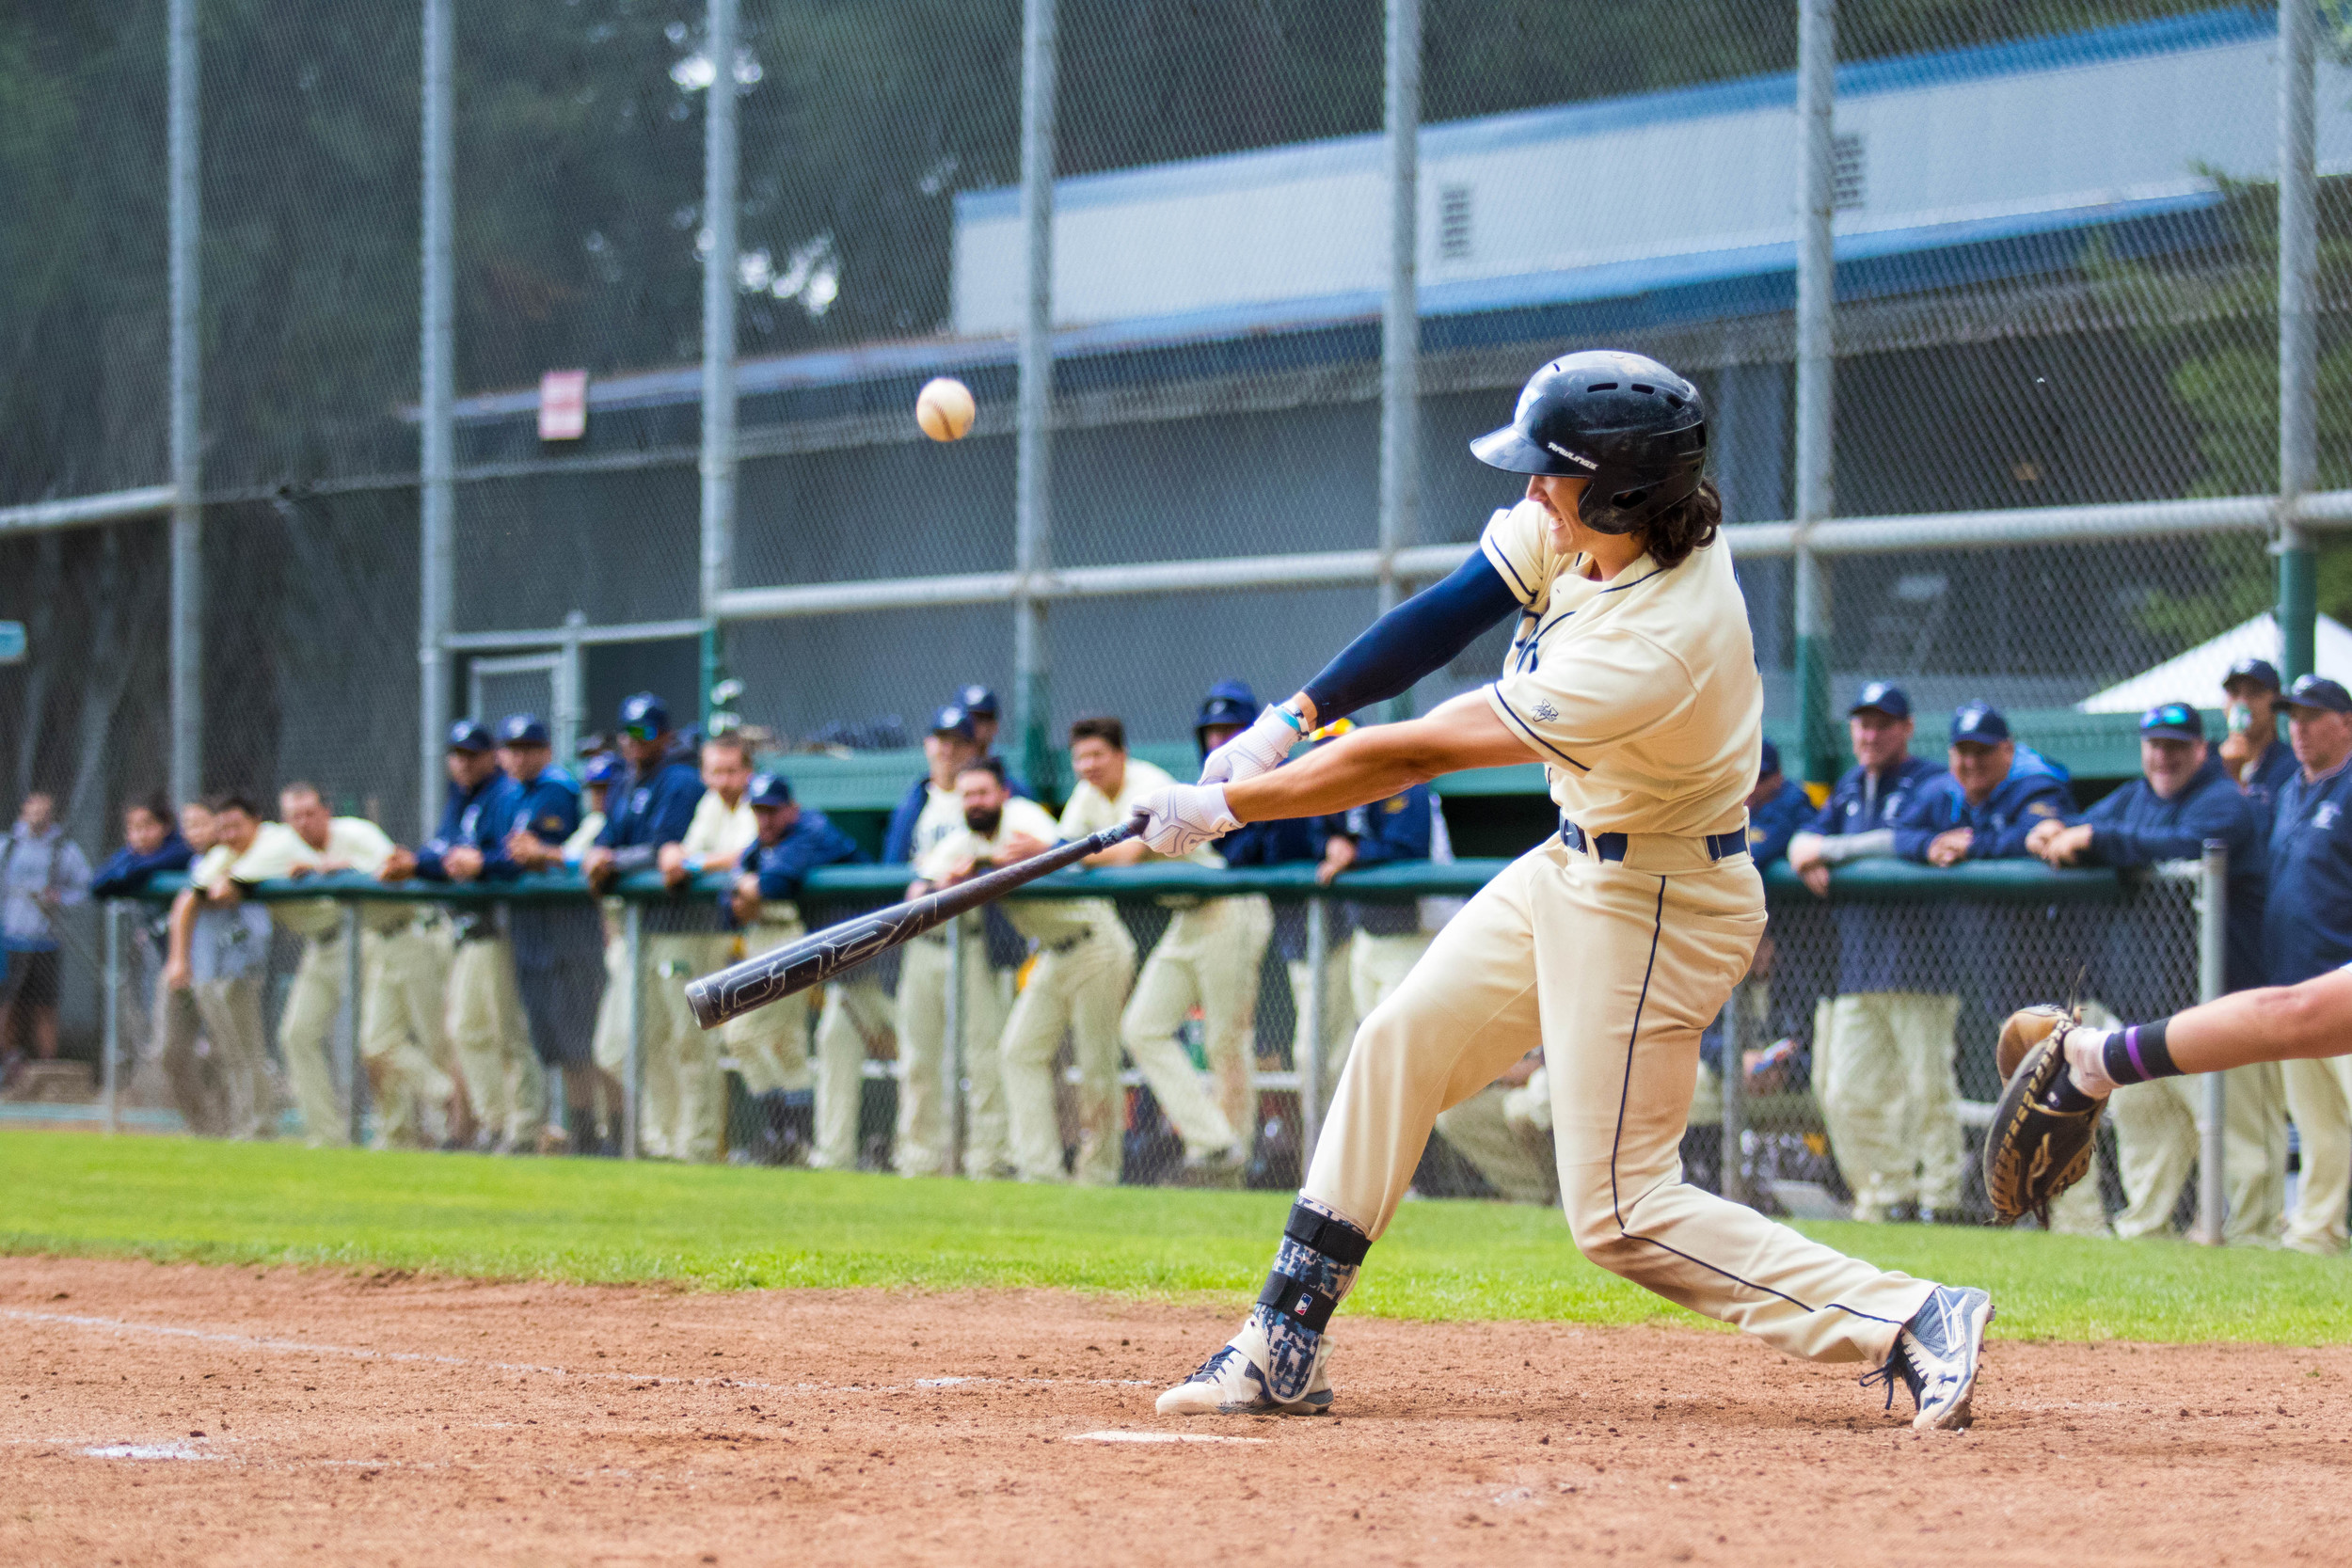 SSU Baseball team up to bat